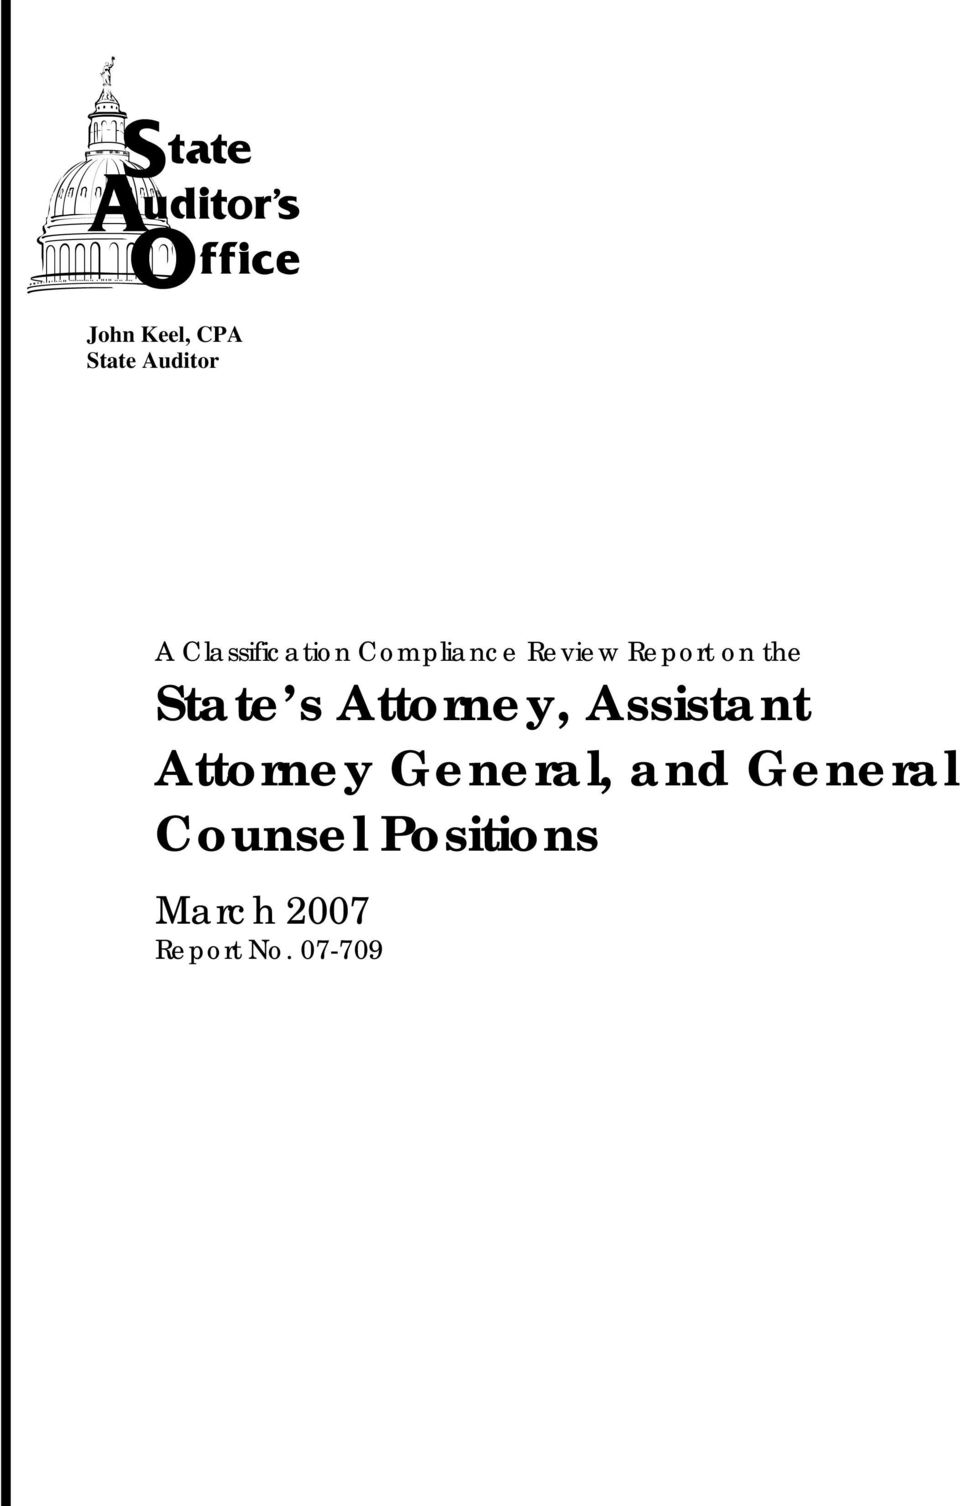 Attorney General, and General